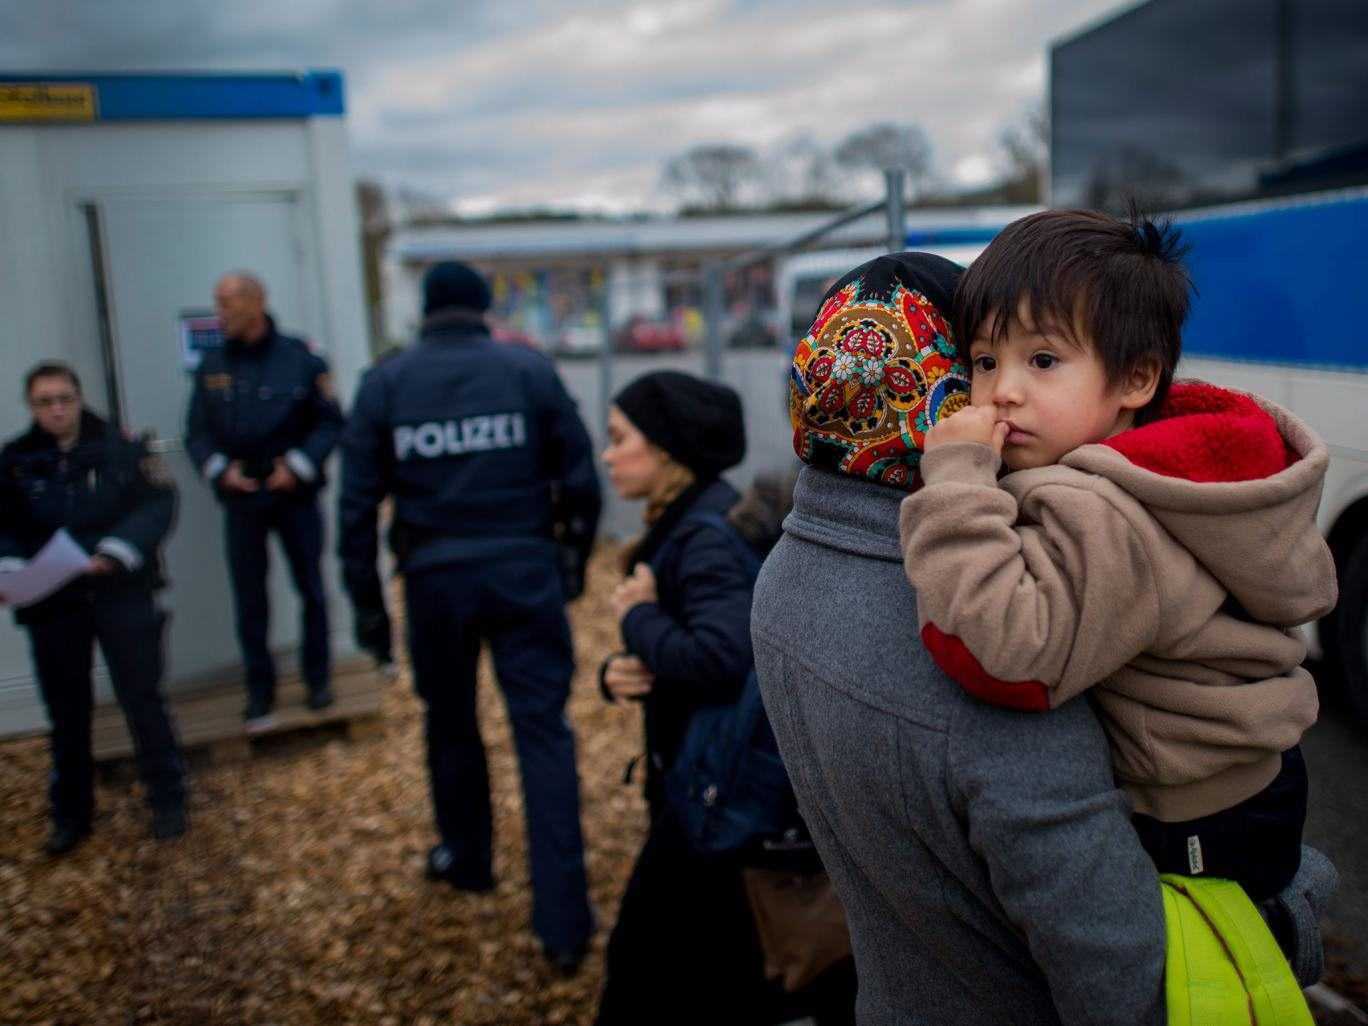 Germany Is Now Seizing Cash And Valuables From Arriving Refugees Refugees Austria Germany